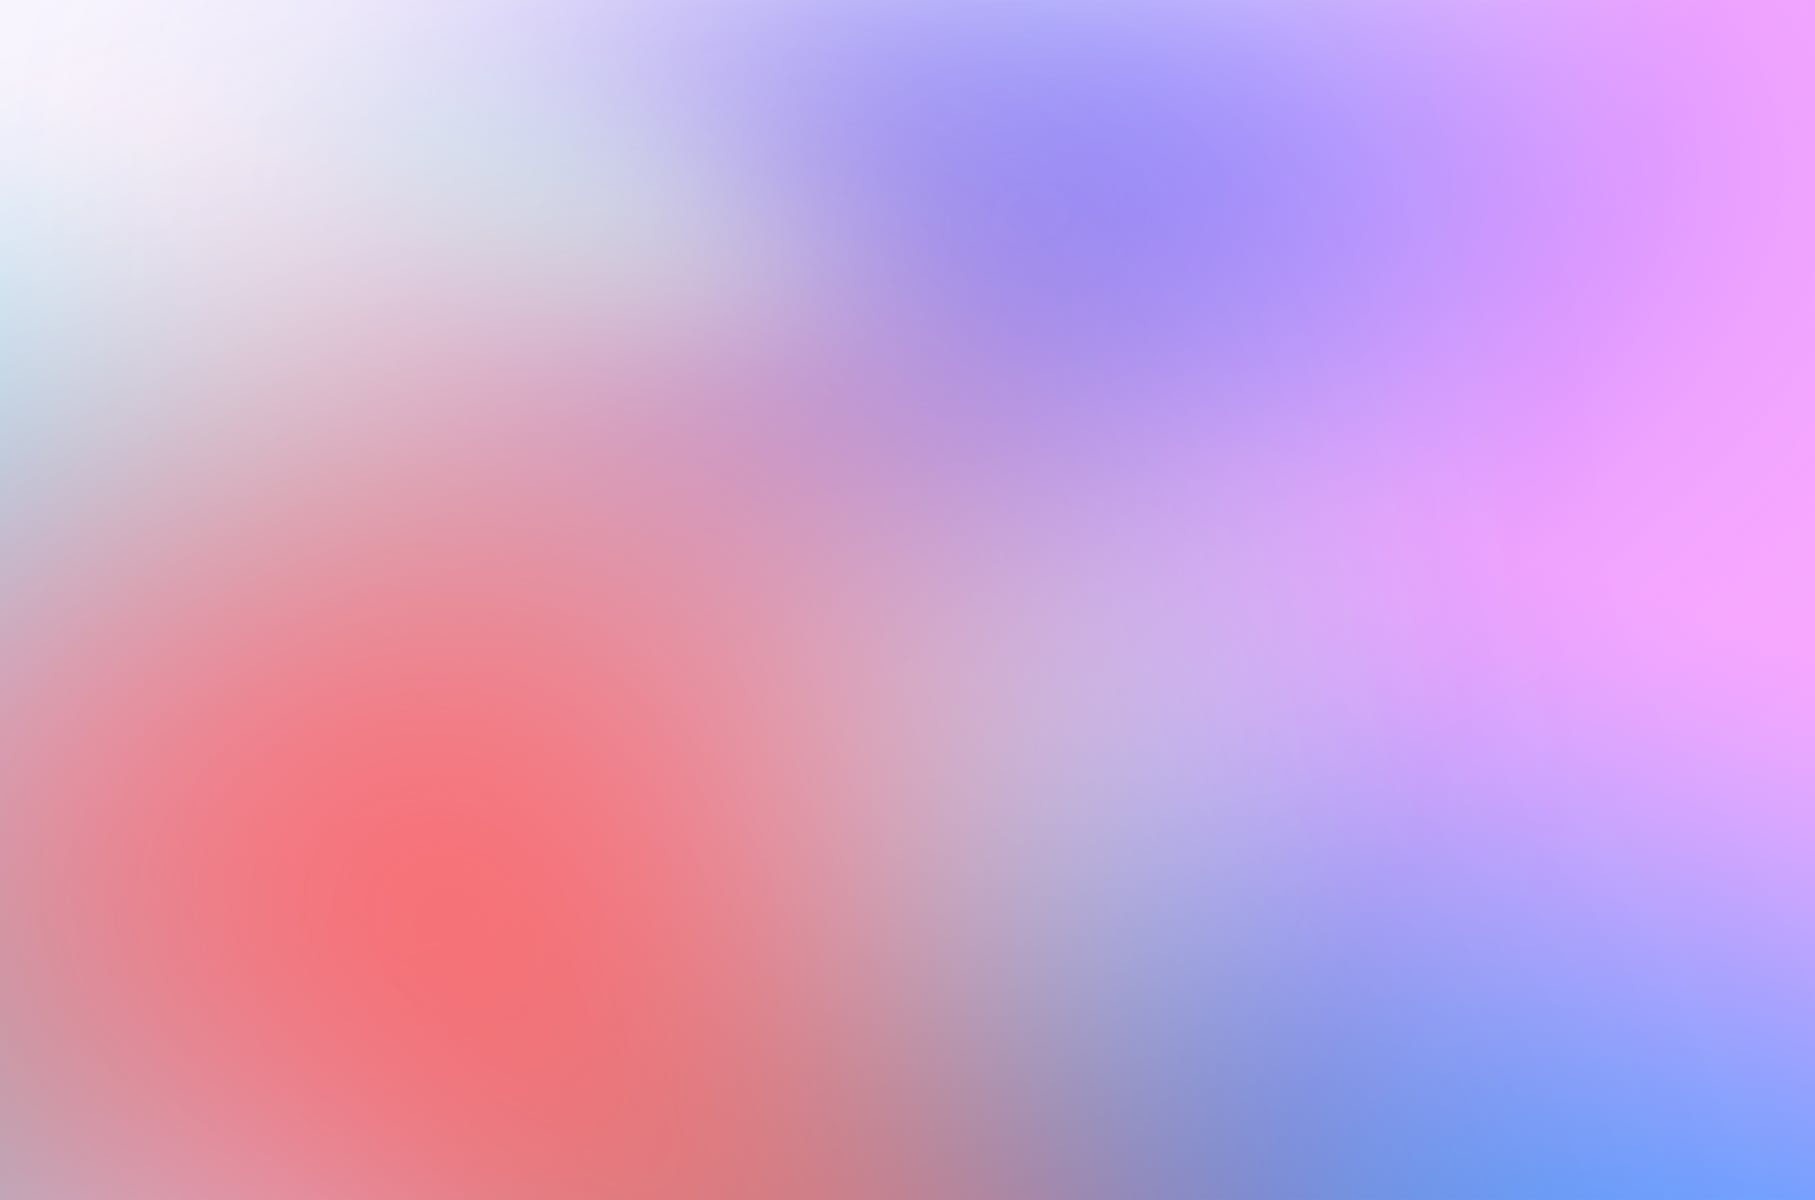 Cool Background Gradient Css